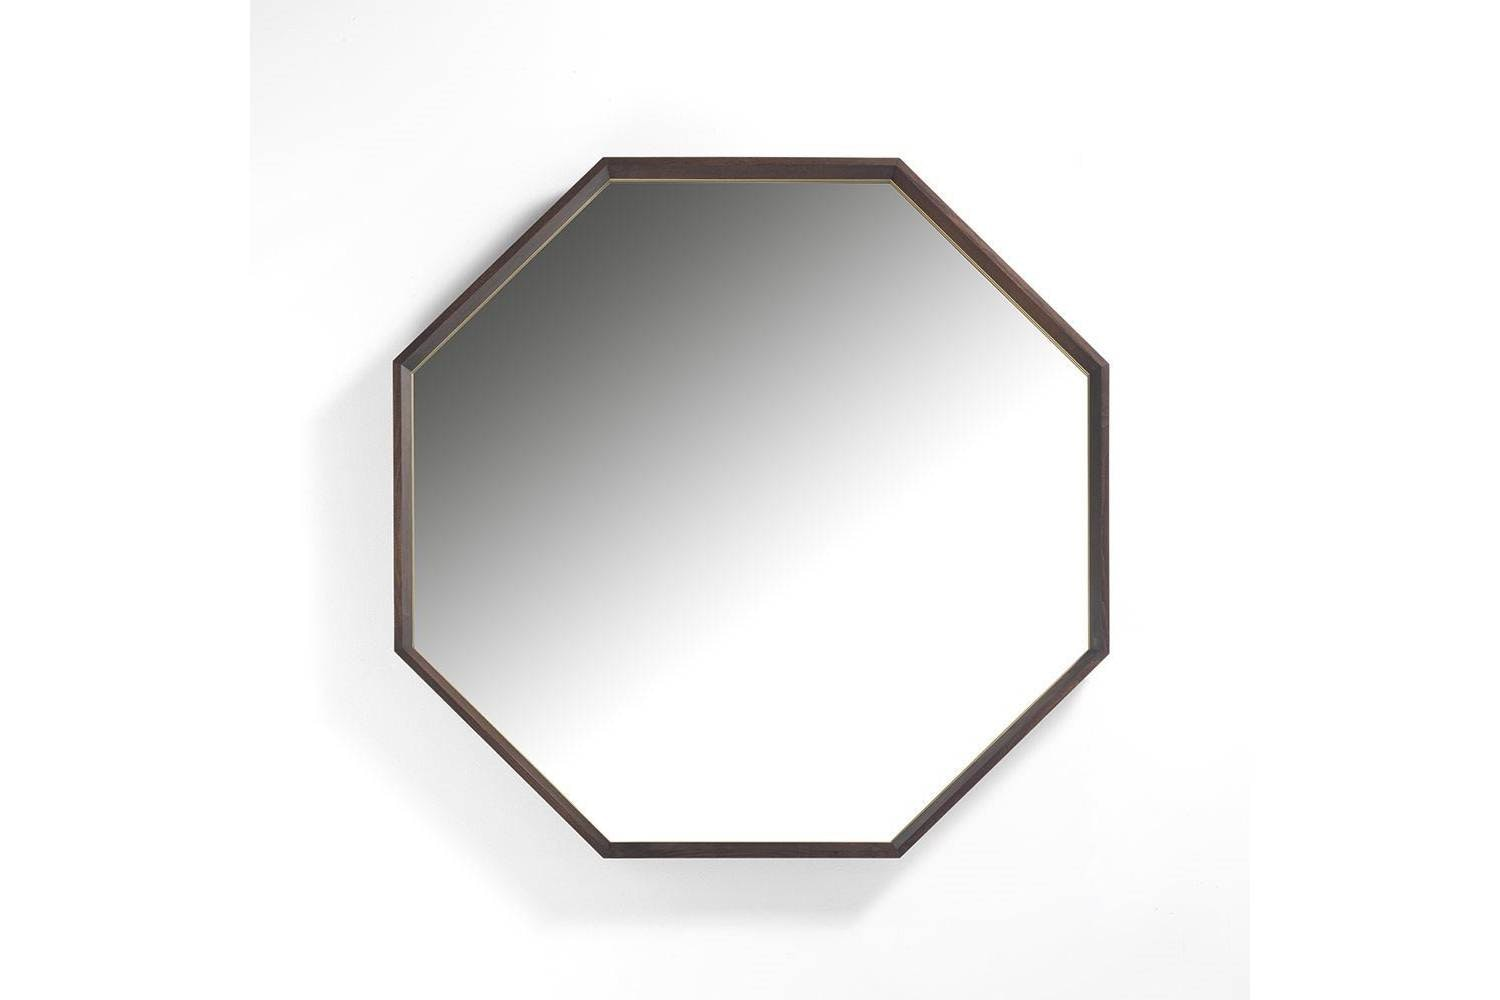 Hotto Mirror by E. Garbin - M. Dell'Orto for Porada